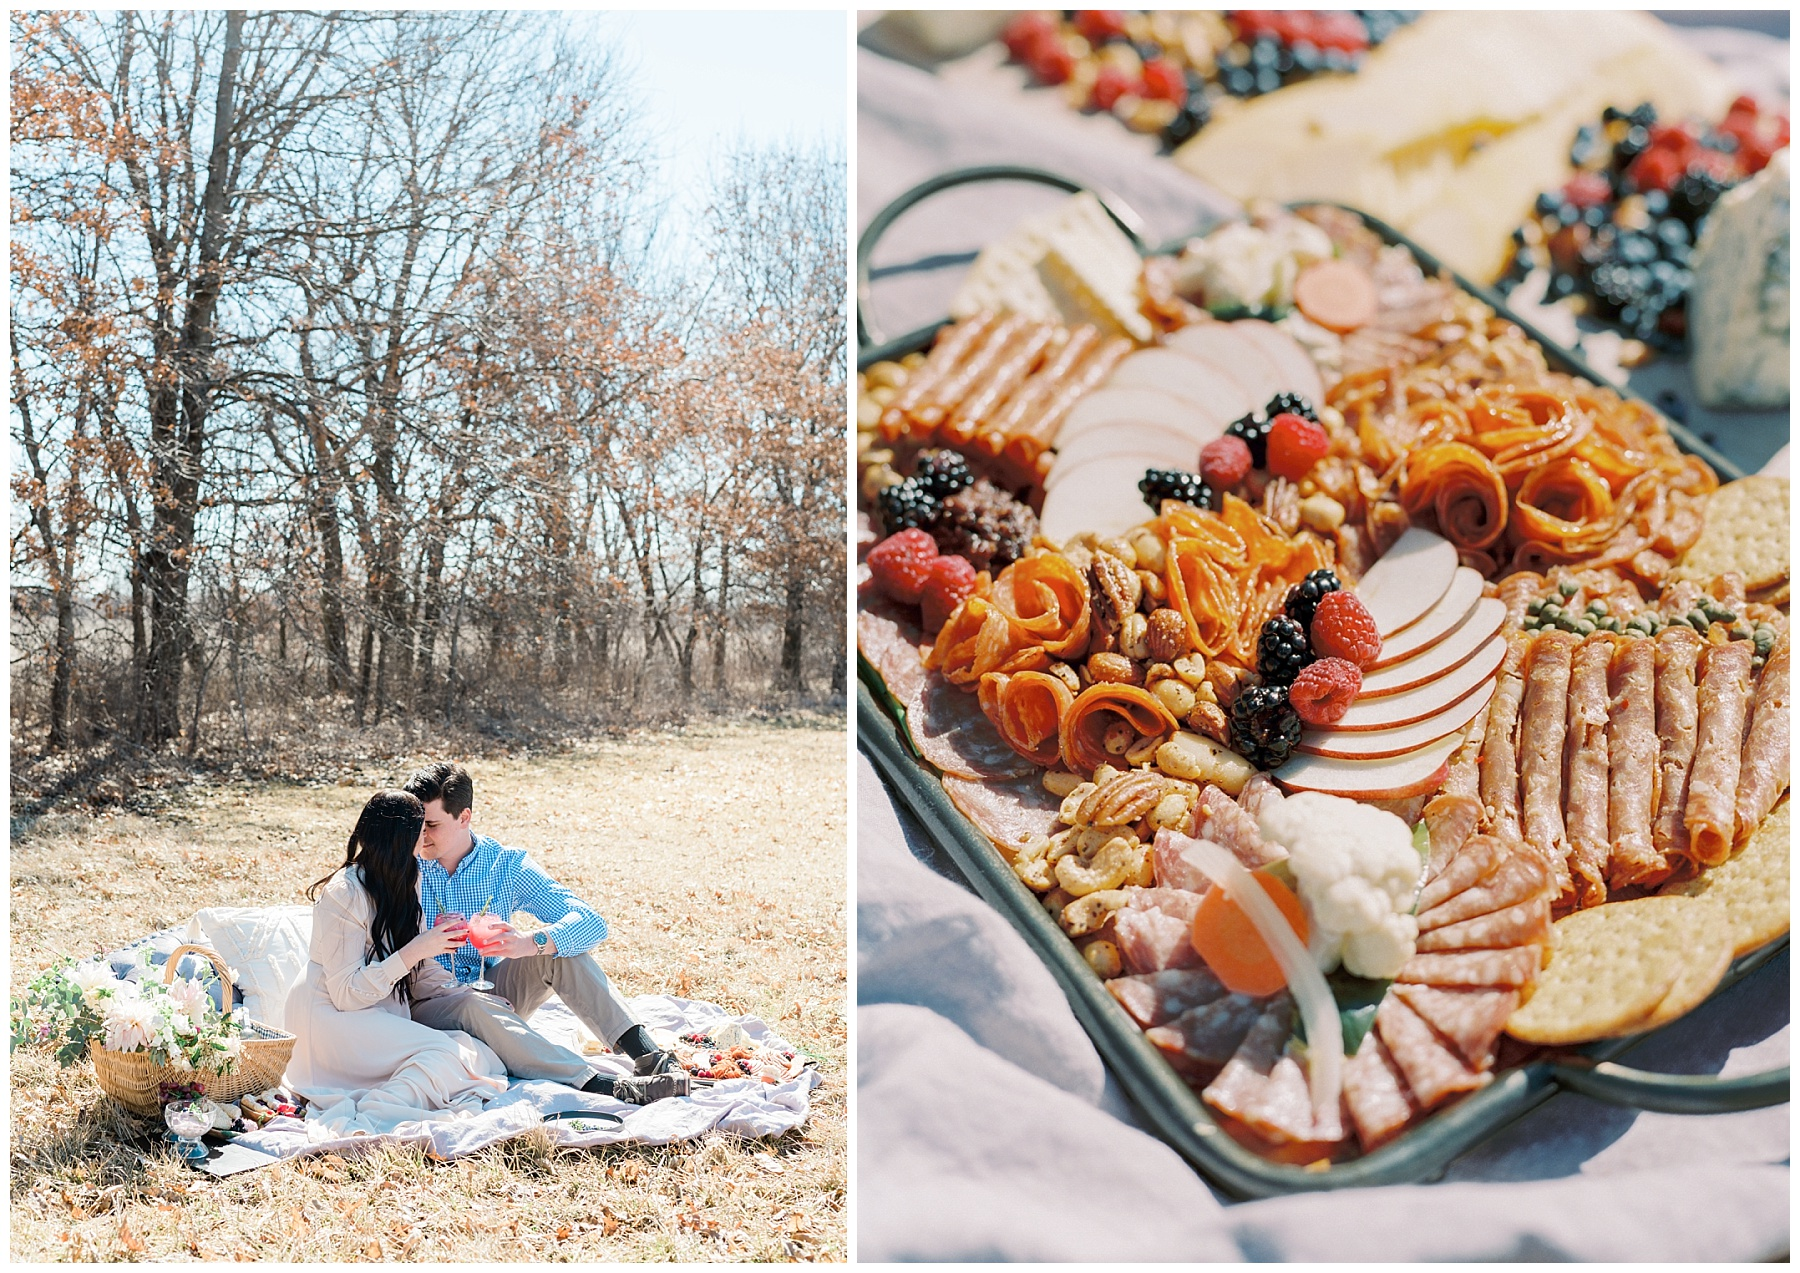 Late Fall Farm-to-table Inspired Brunch Picnic Engagement Session During Wedding Weekend by Kelsi Kliethermes Photography Best Missouri and Maui Wedding Photographer_0019.jpg